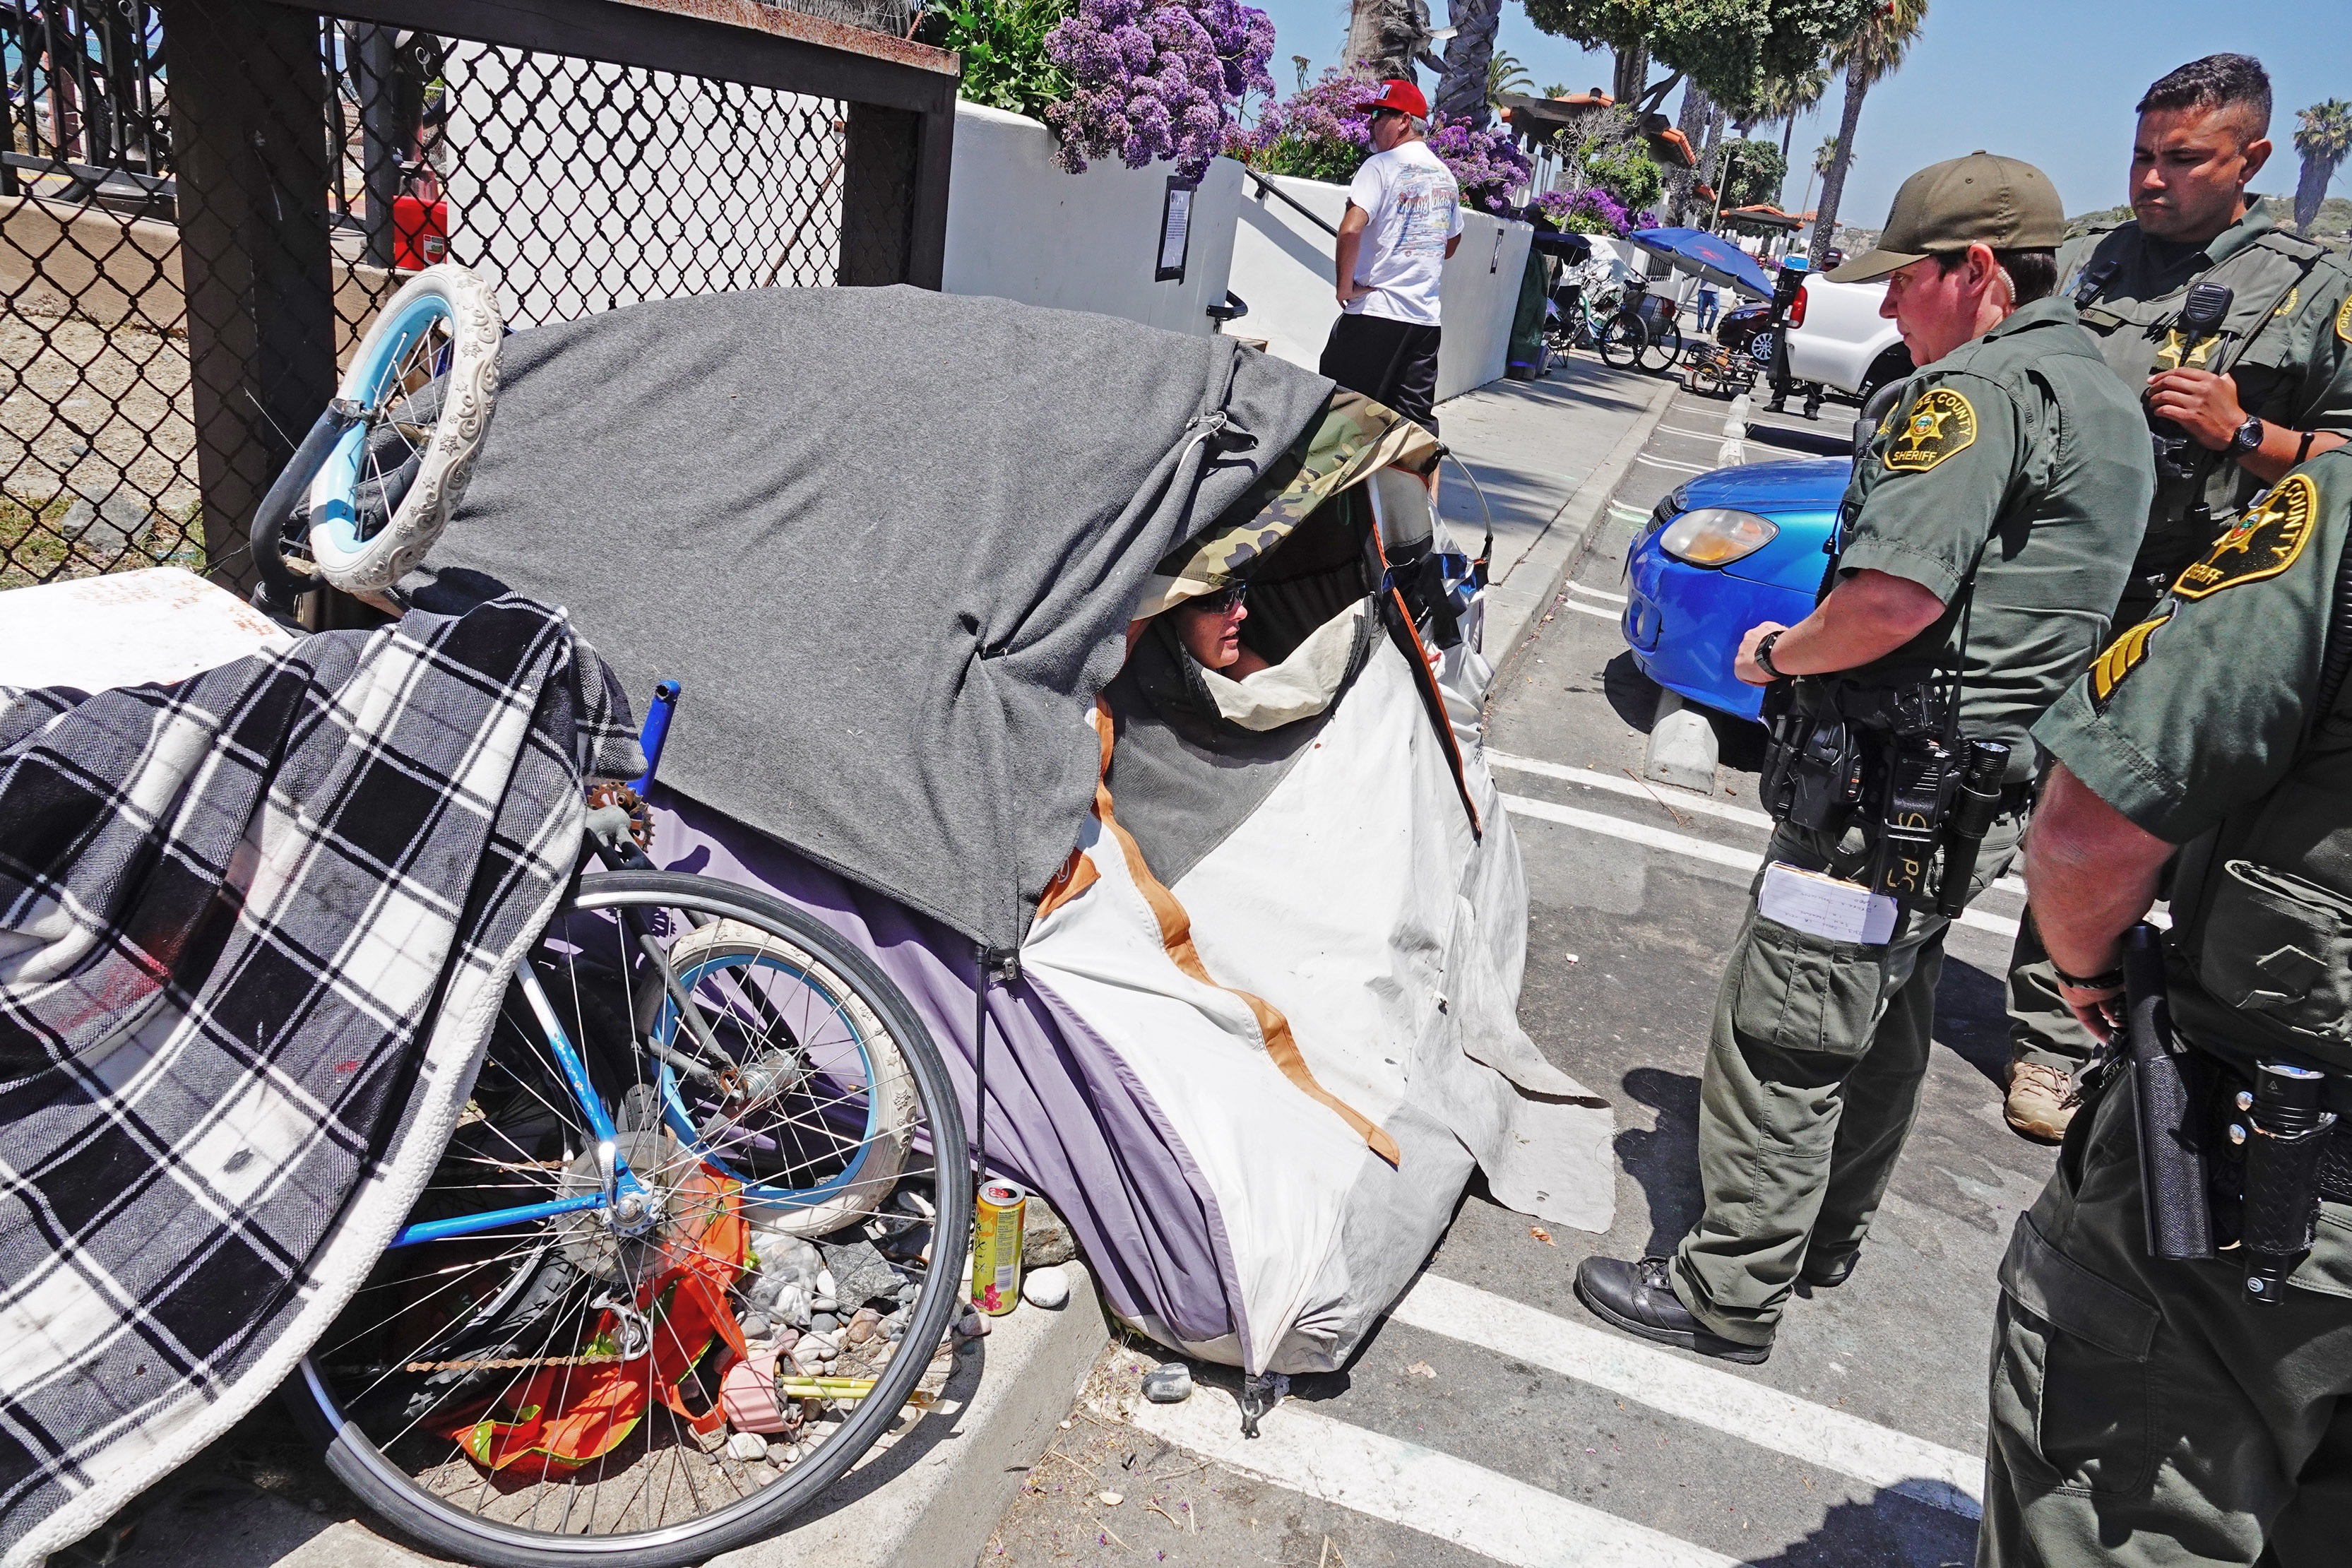 Sheriff's deputies at San Clemente's North Beach advise a camper on Friday, May 24. that she and her belongings must relocate. They offered her assistance to move to an area that the city of San Clemente has designated for homeless campers. Photo: Fred Swegles